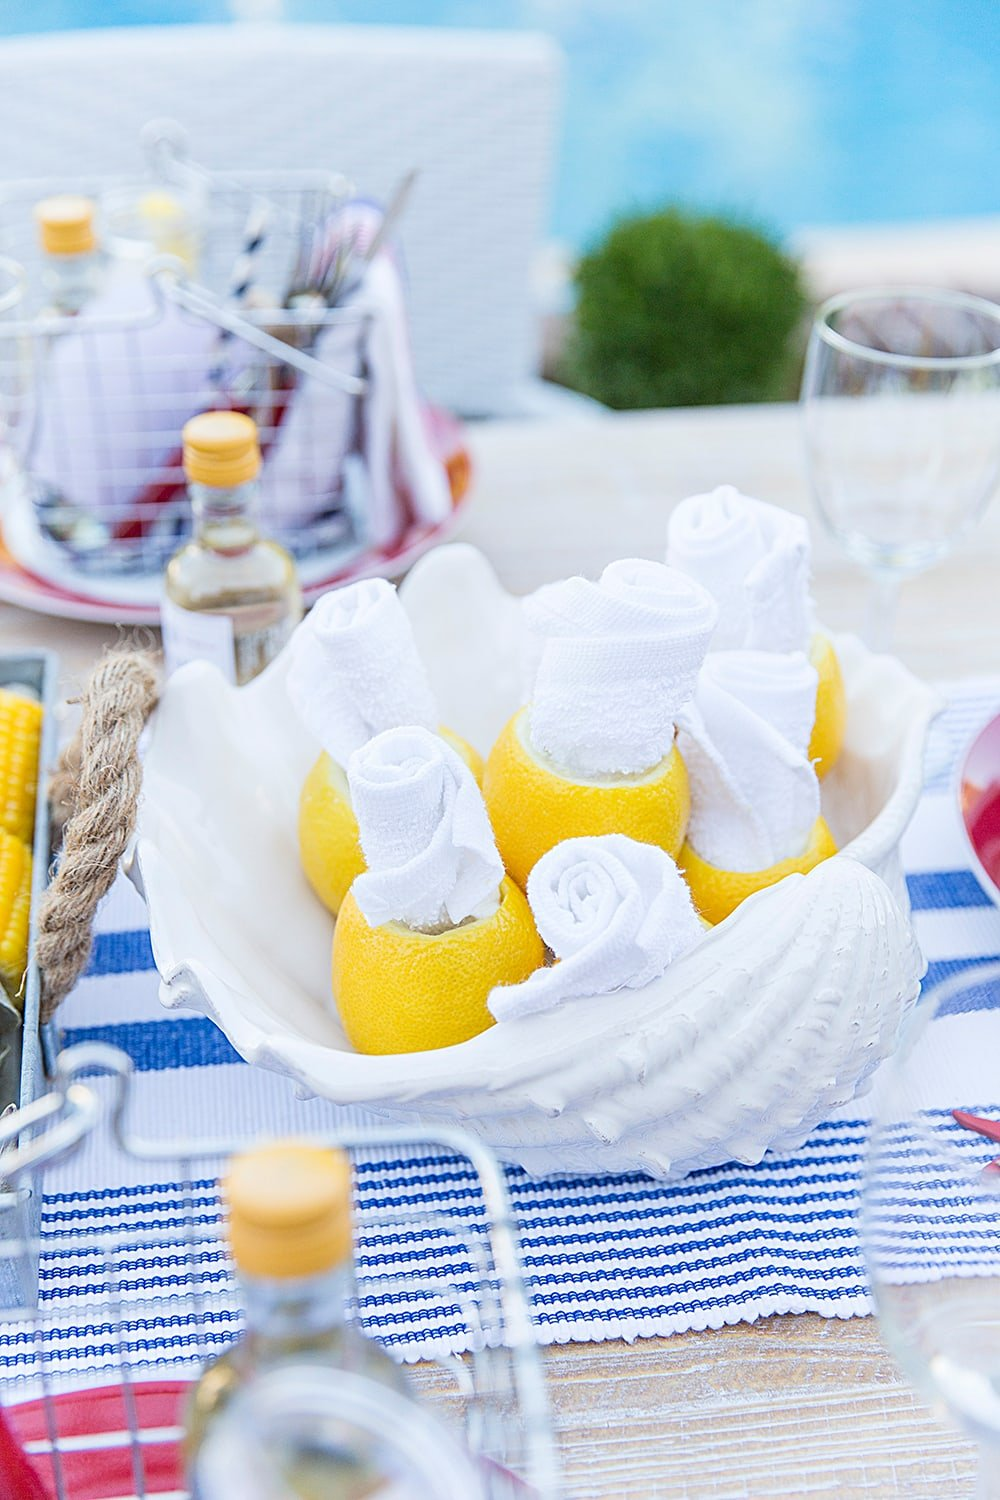 Rolled towels tucked in lemons, perfect for those messy meals!